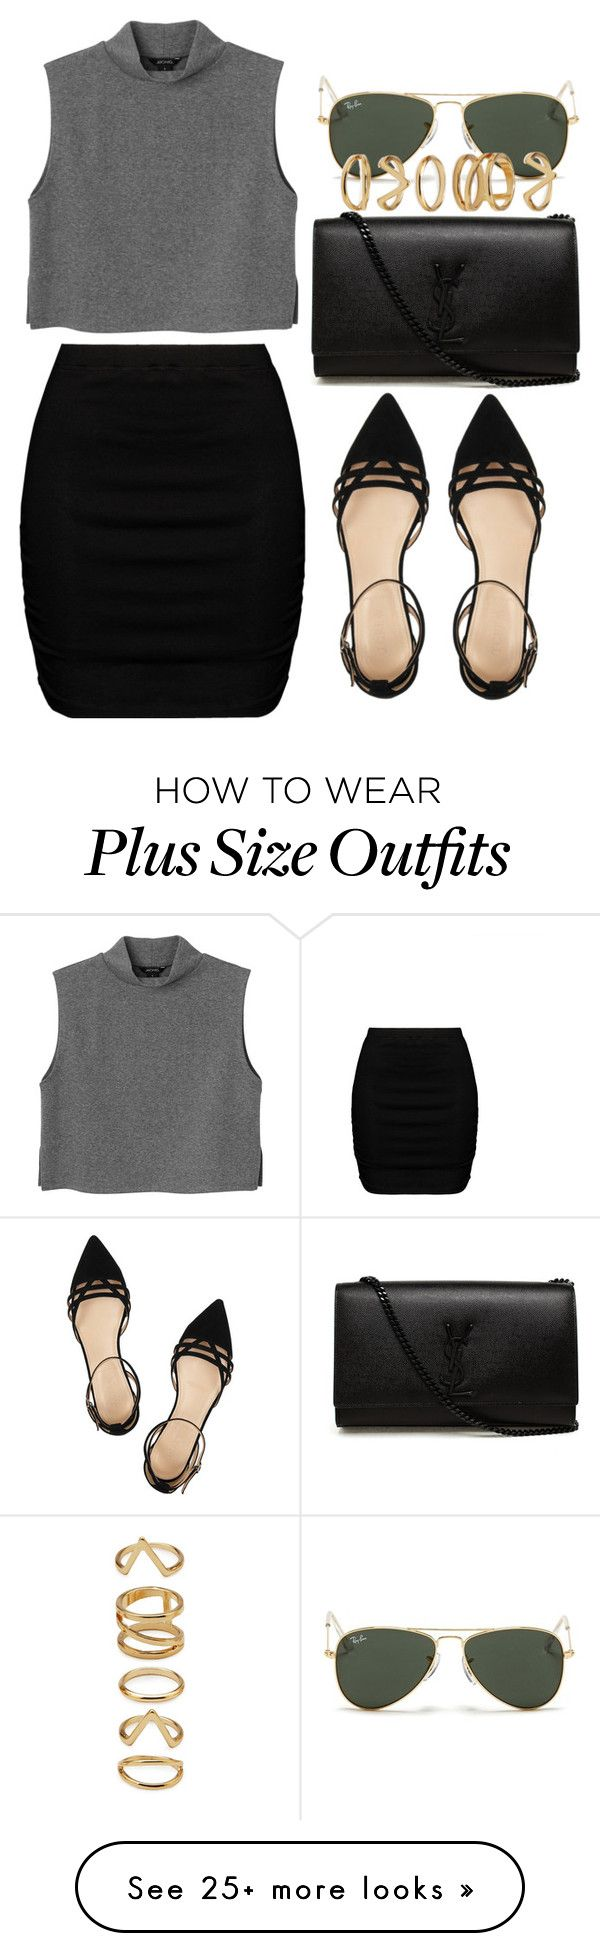 """Untitled #308"" by kaylan-jayne on Polyvore featuring Yves Saint Laurent, Monki, Zizzi, J.Crew, Ray-Ban and Forever 21"